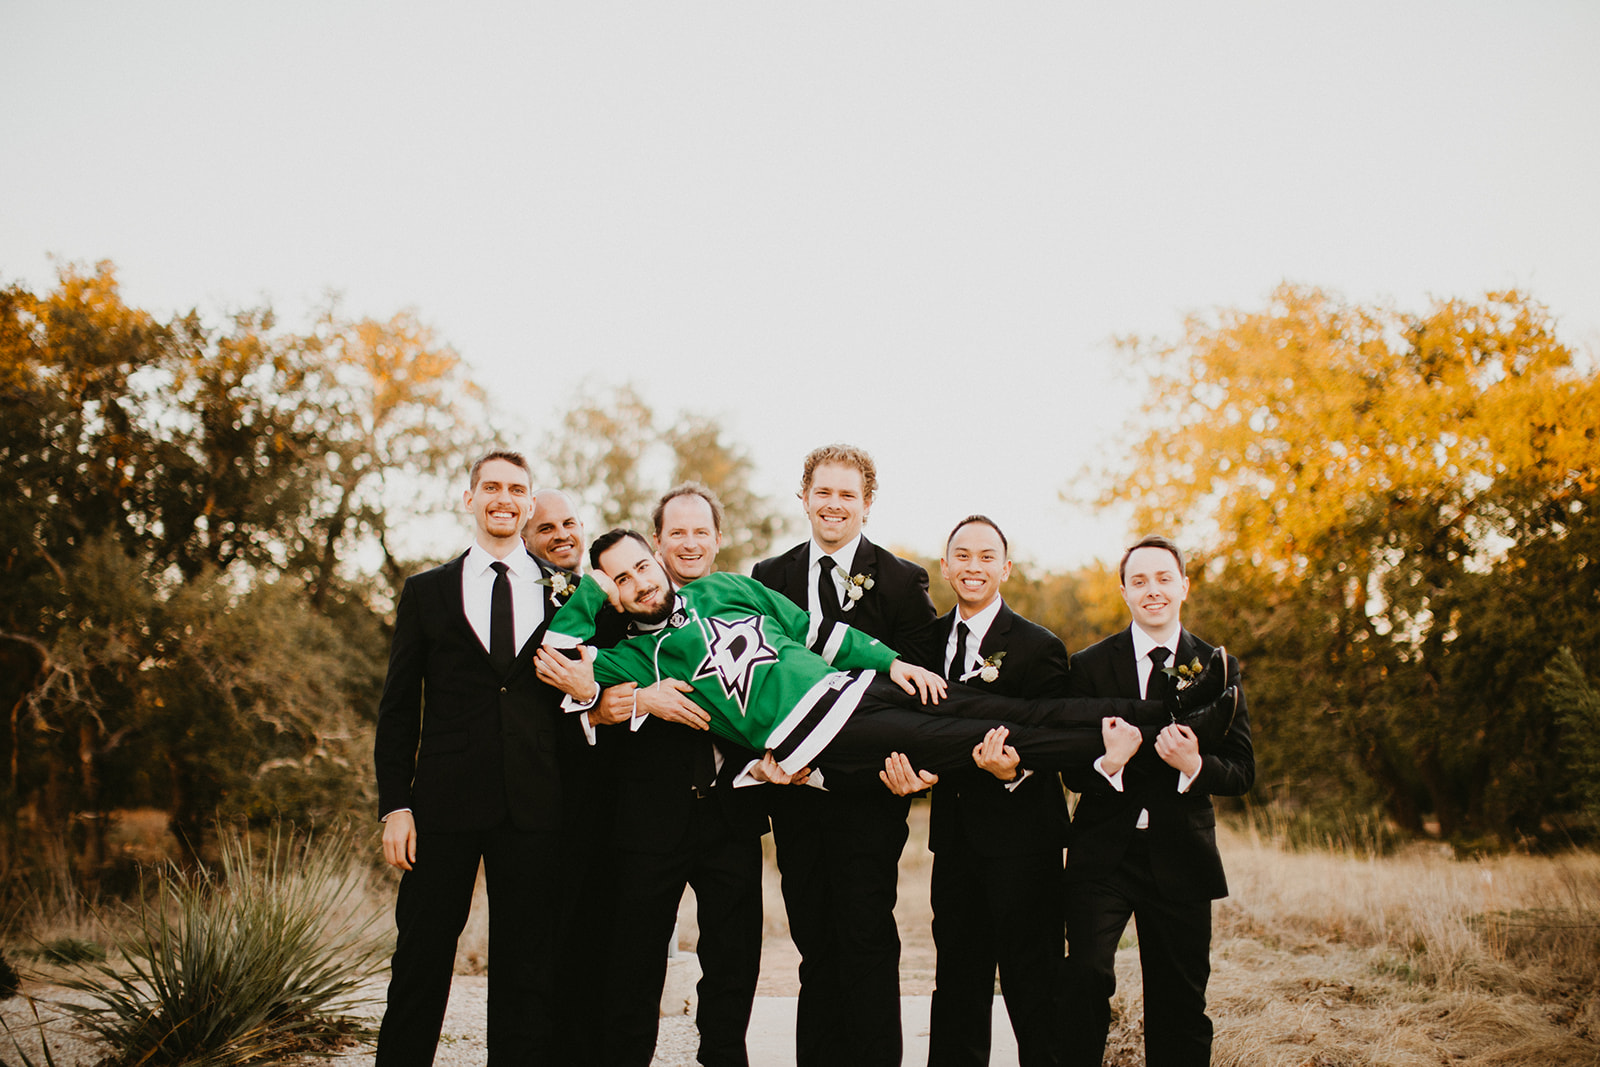 Groom Attire Suit + poses + Floral Tie + Boutonnière with hops + craft brew beer + black + austin wedding venue prospect house + austin wedding planner epoch co